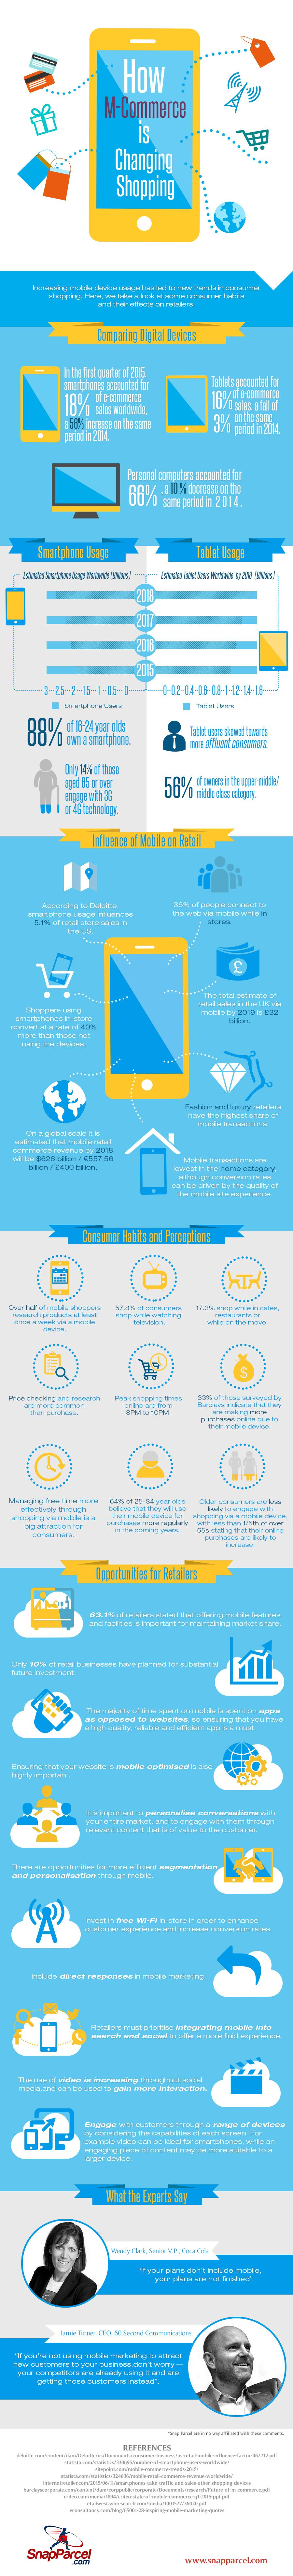 How M-Commerce is Transforming Shopping #Infographic